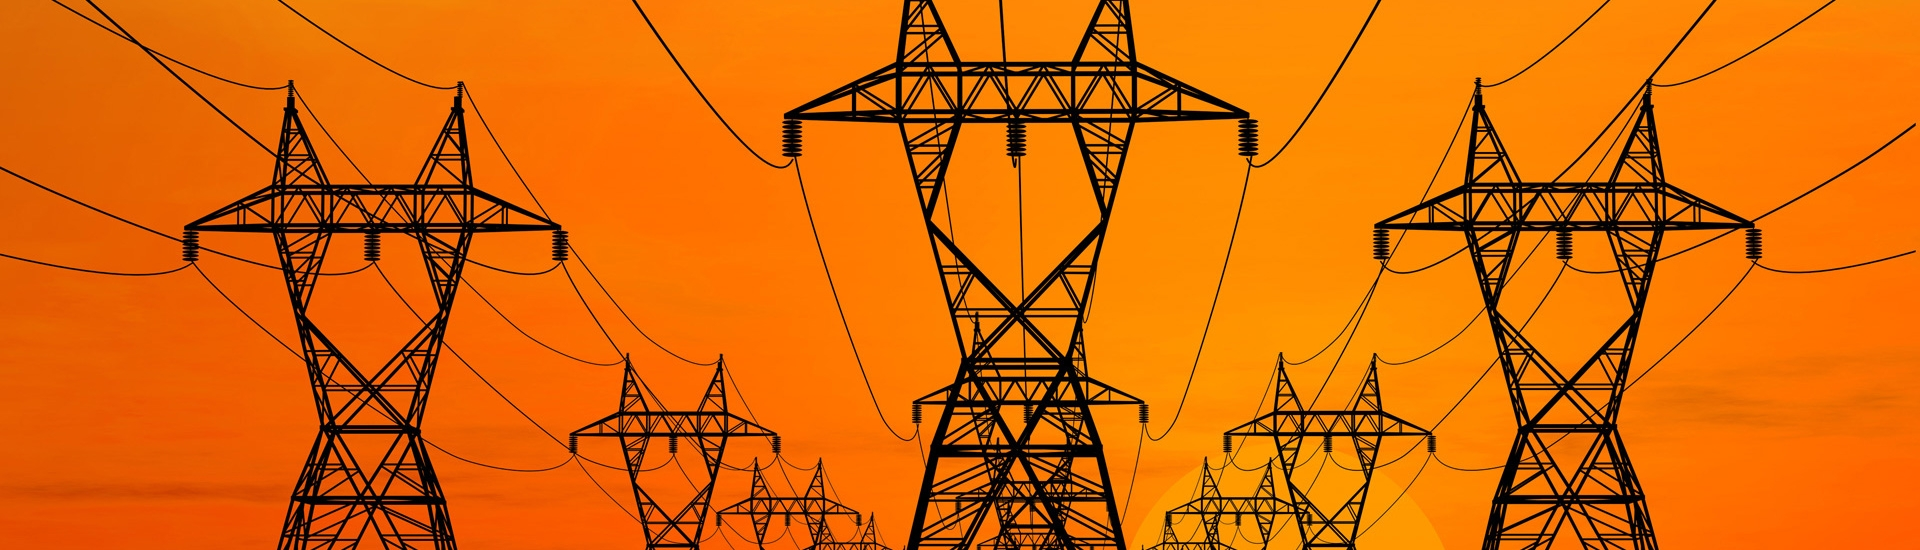 Transmission & Distribution Systems